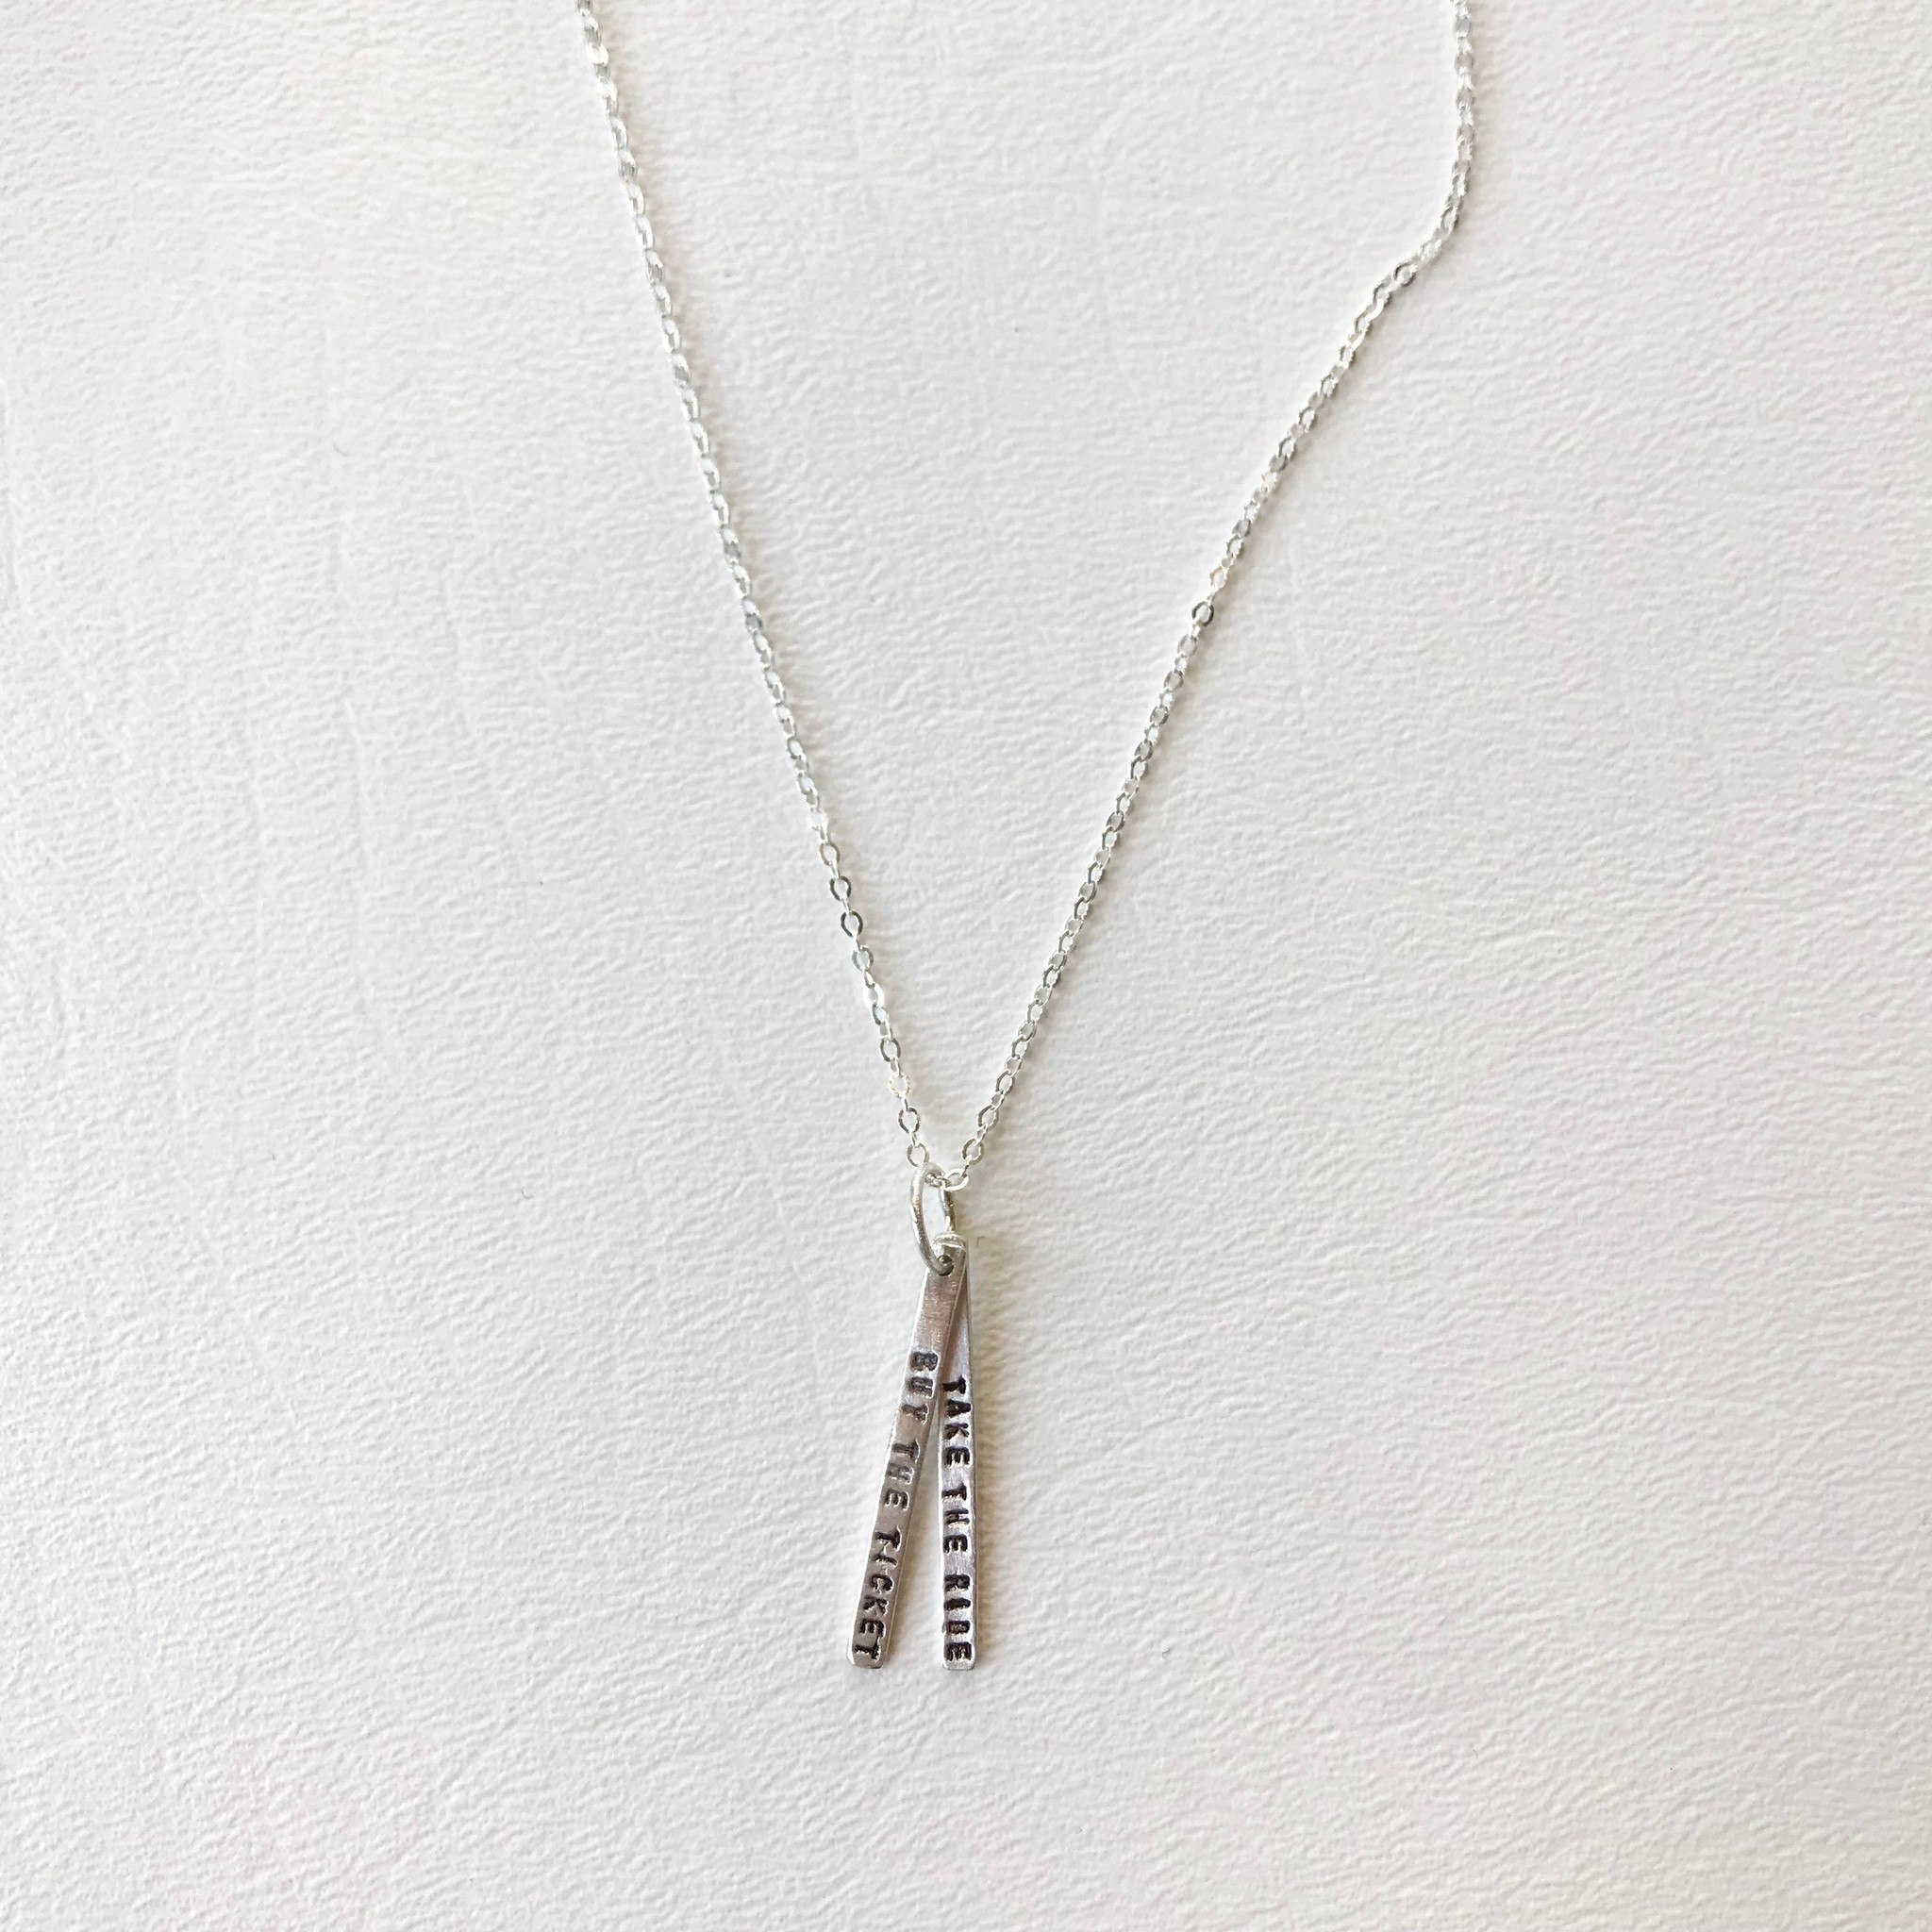 2 bar buy the ticket take the ride necklace